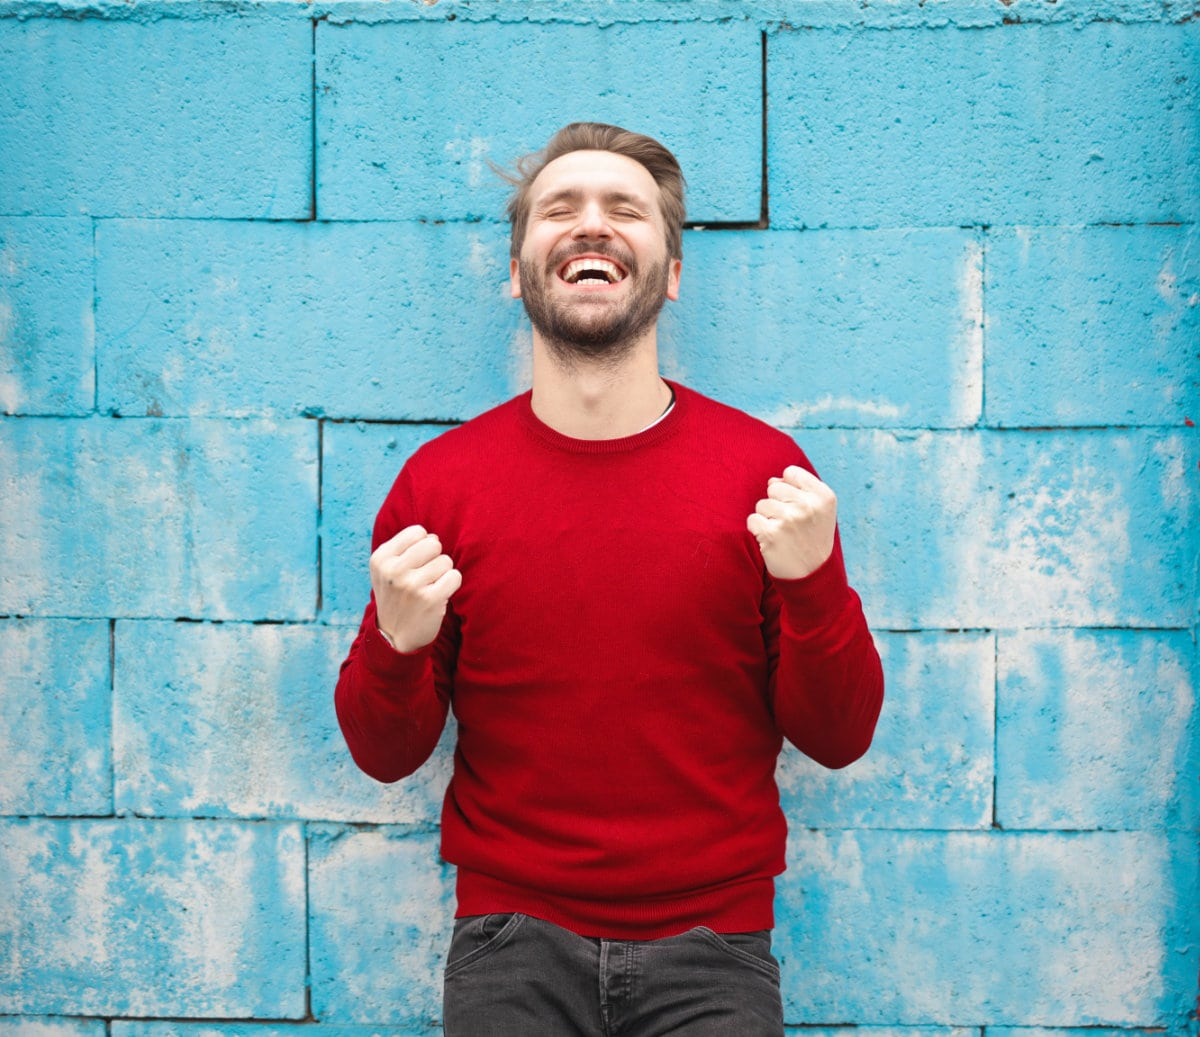 excited man in red sweater in front of blue wall